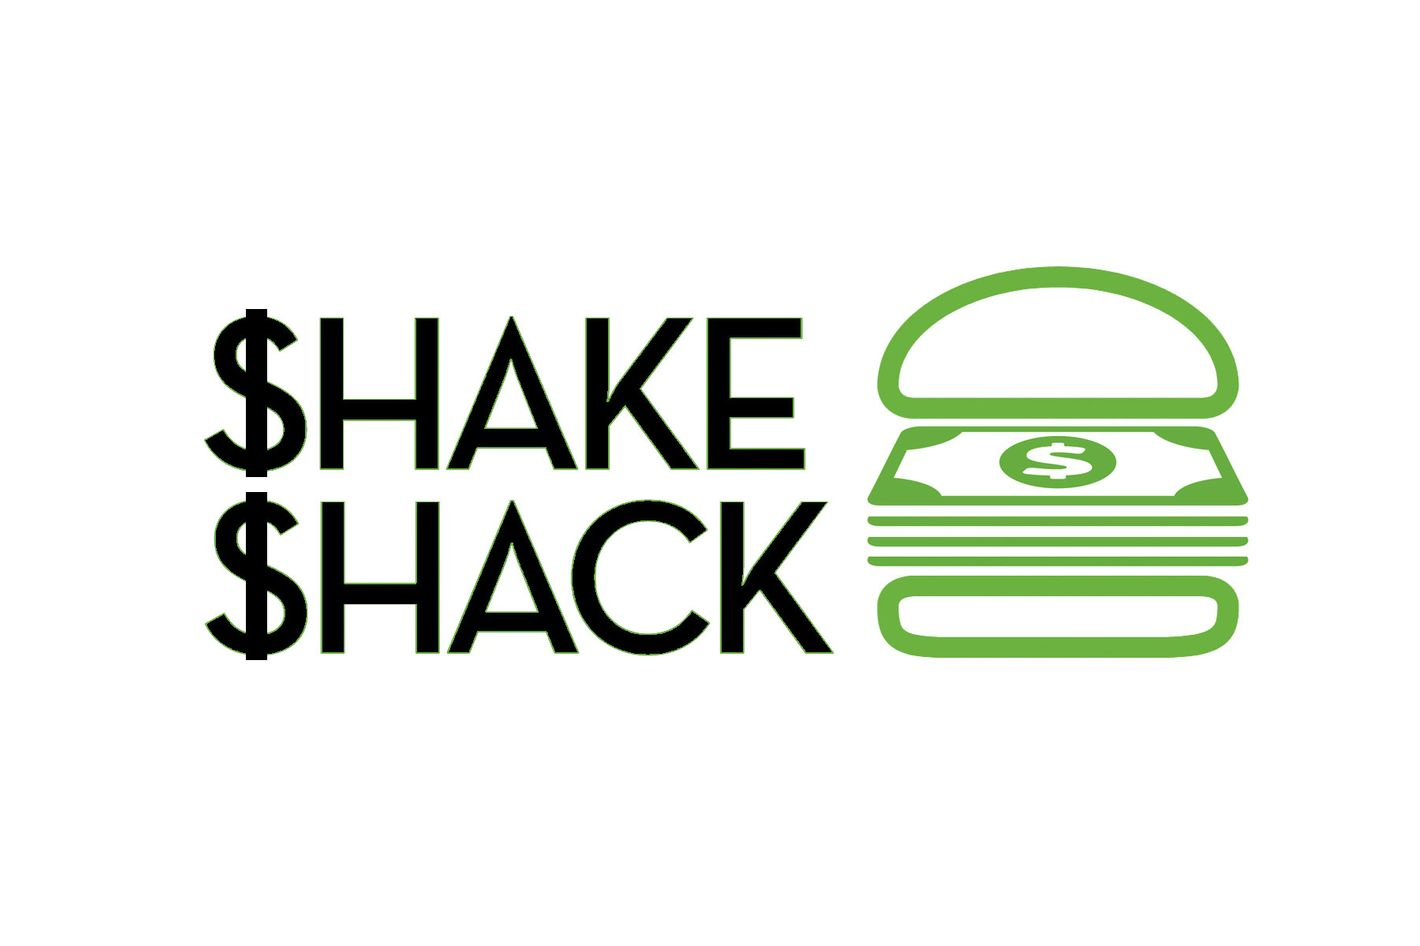 Shake Shack Logo Should You Buy Shake Shack Stock This Expert Says 'be Wary'